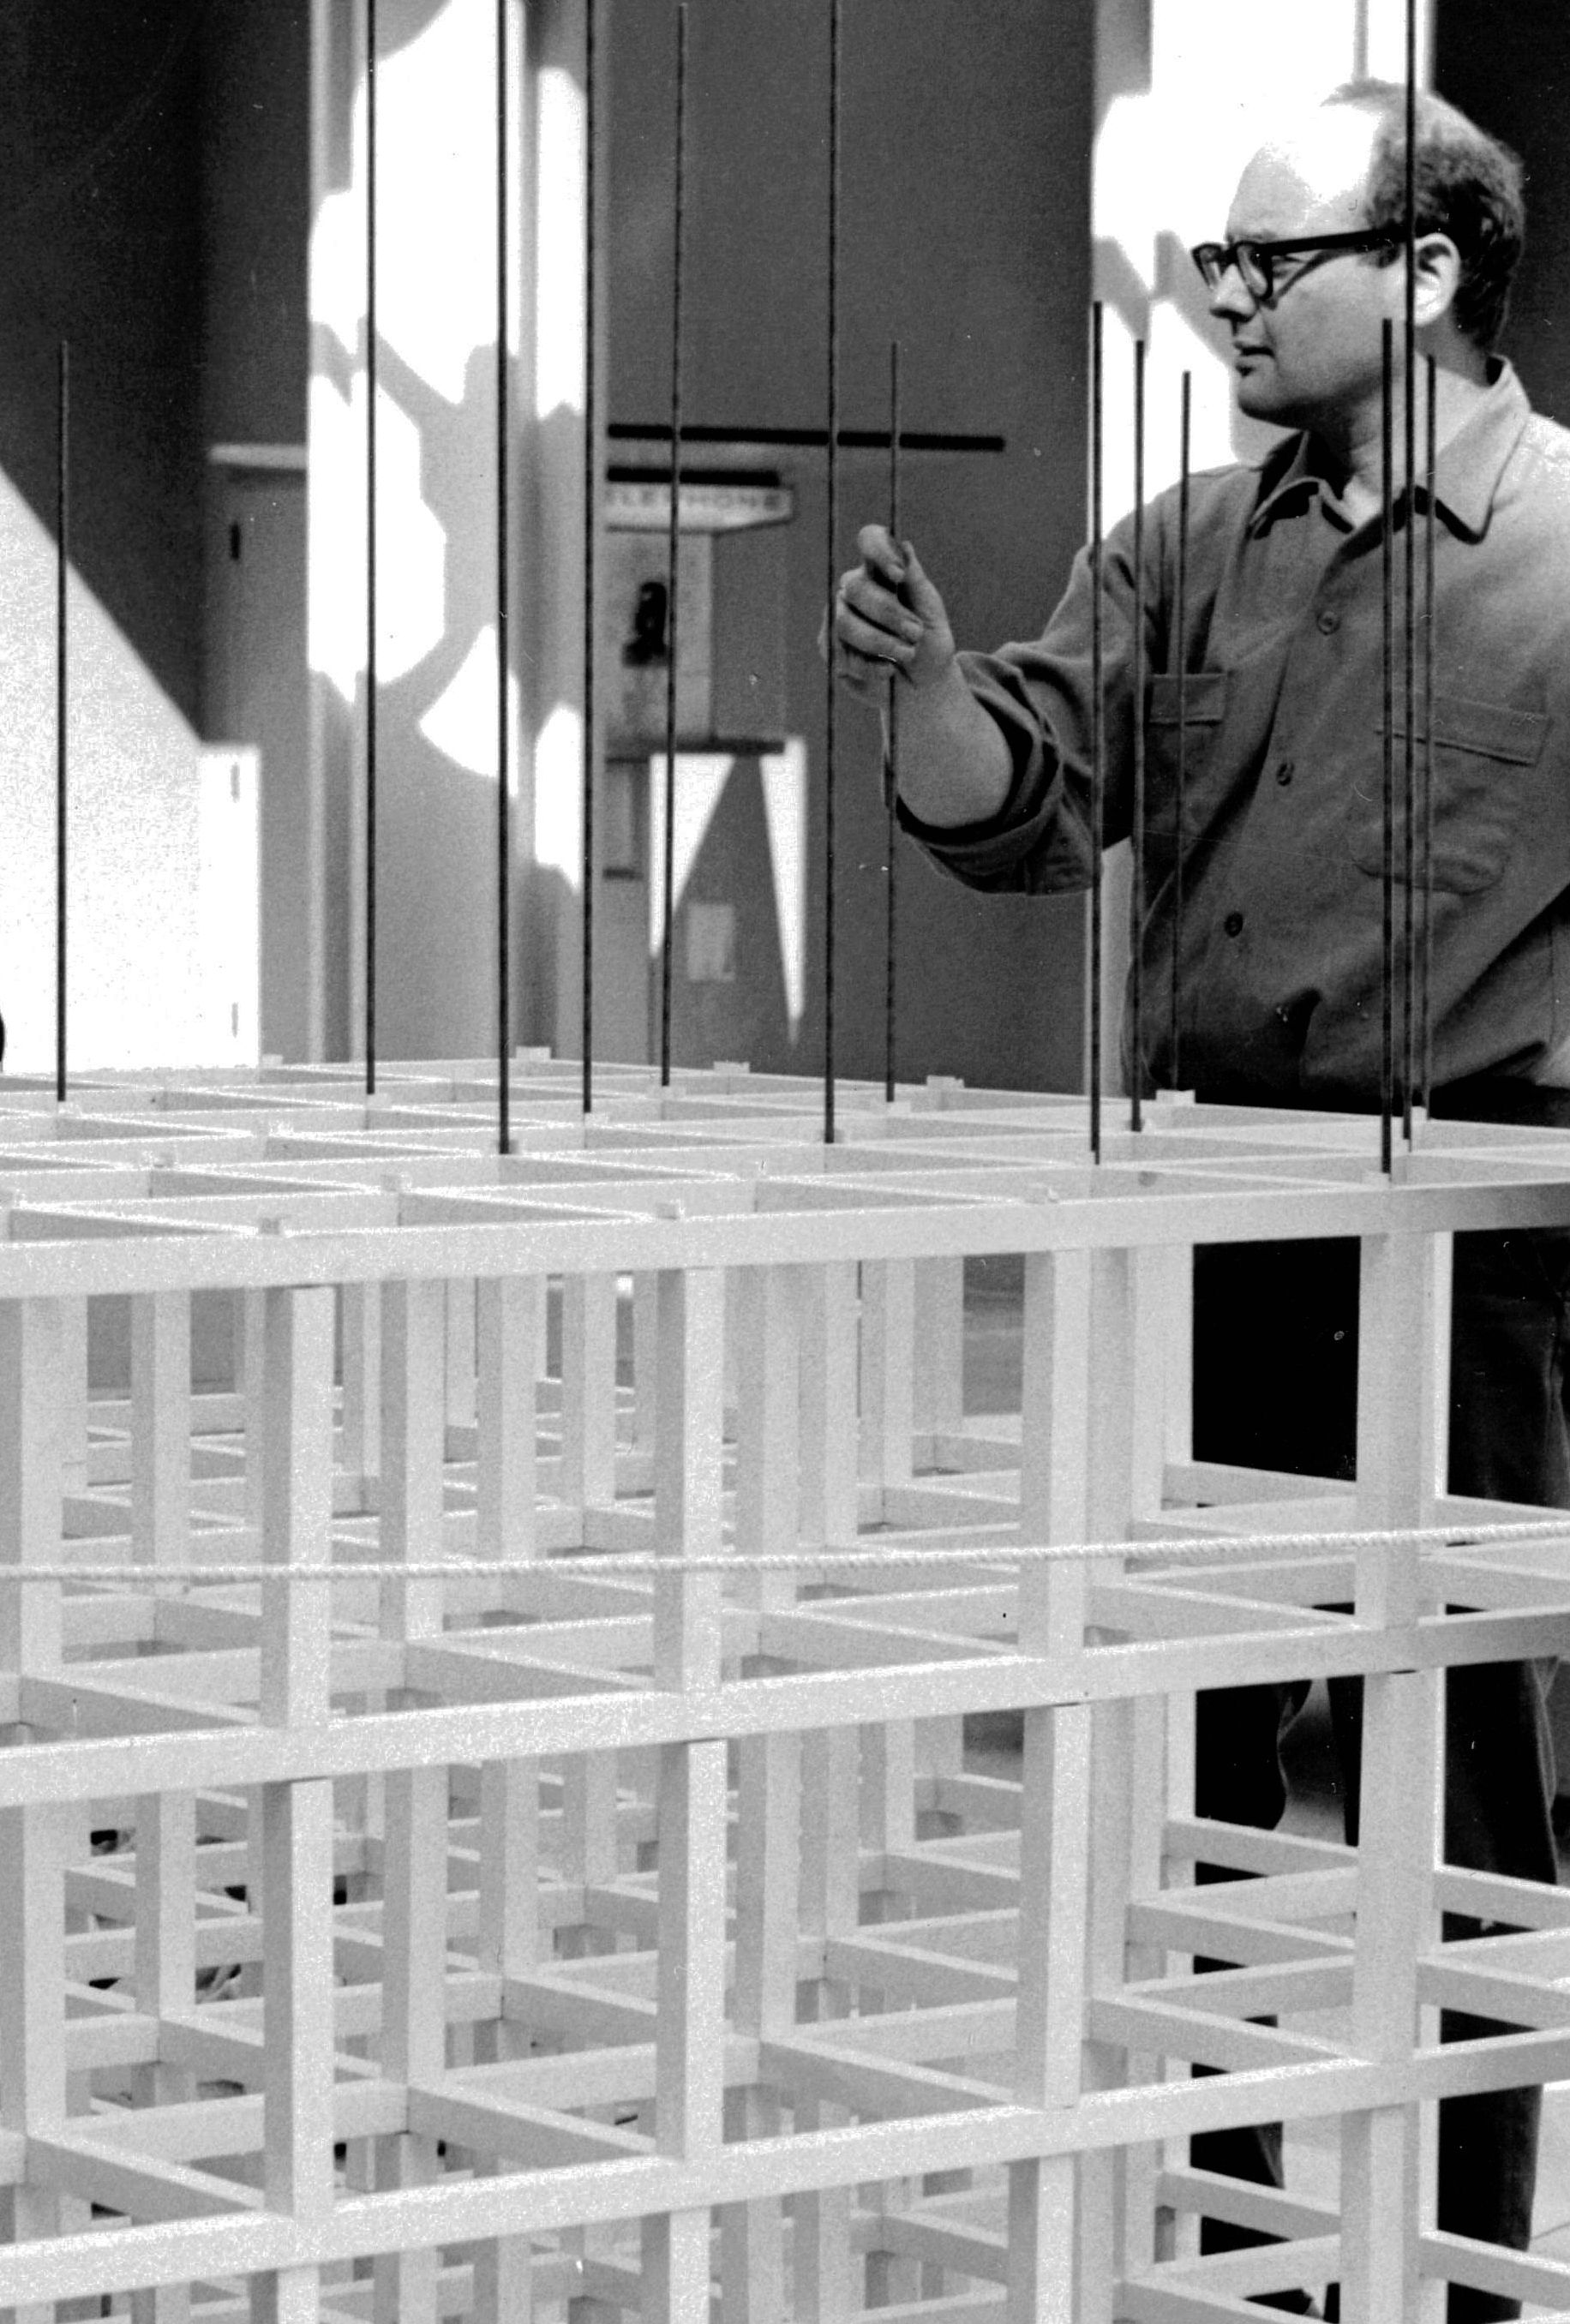 Sol LeWitt portrait with sculpture